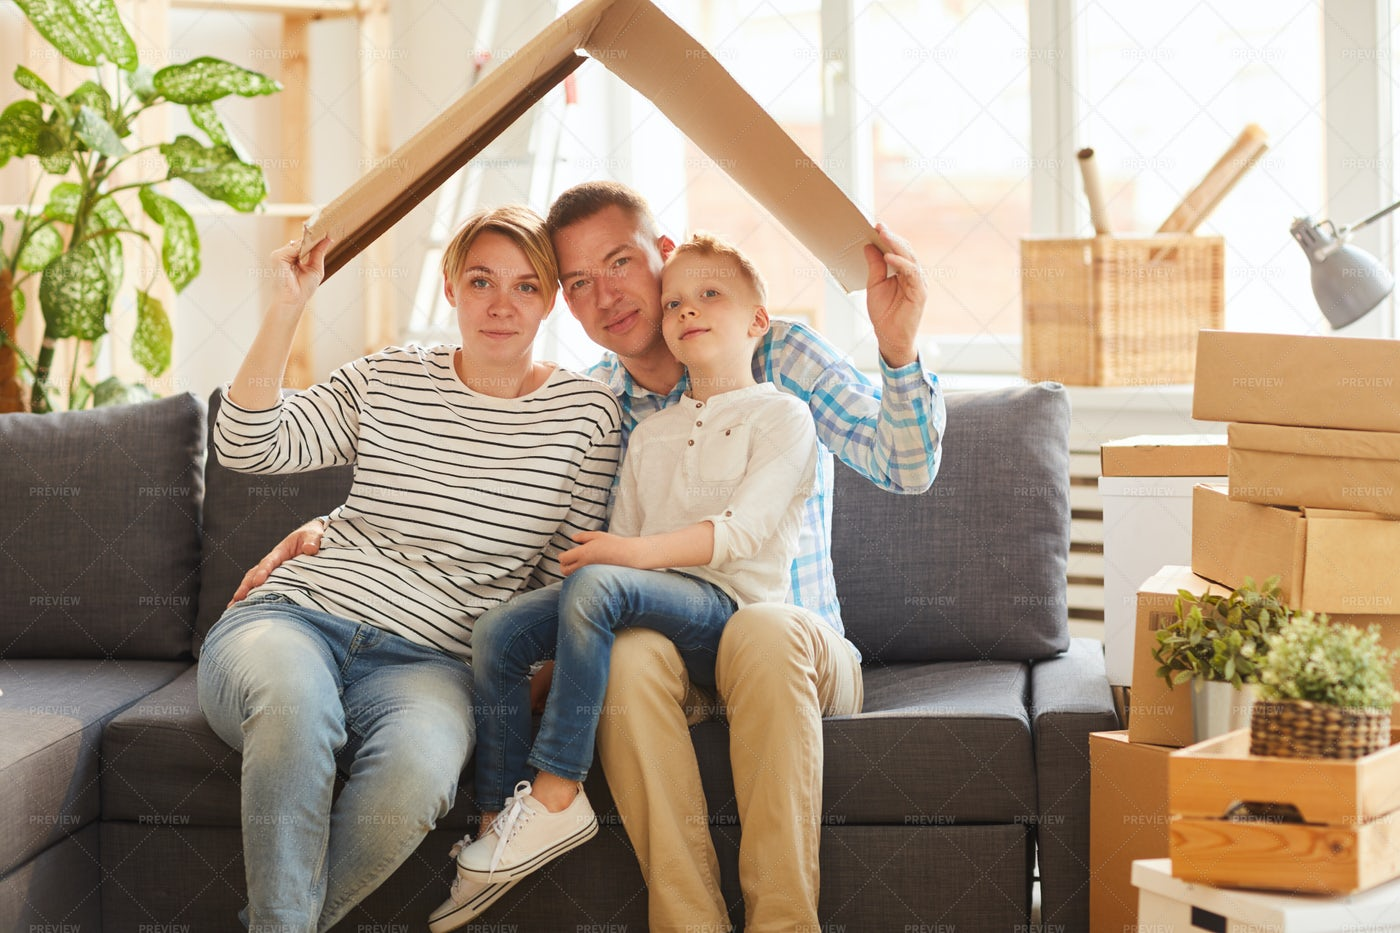 Family Holding Cardboard Roof Above...: Stock Photos